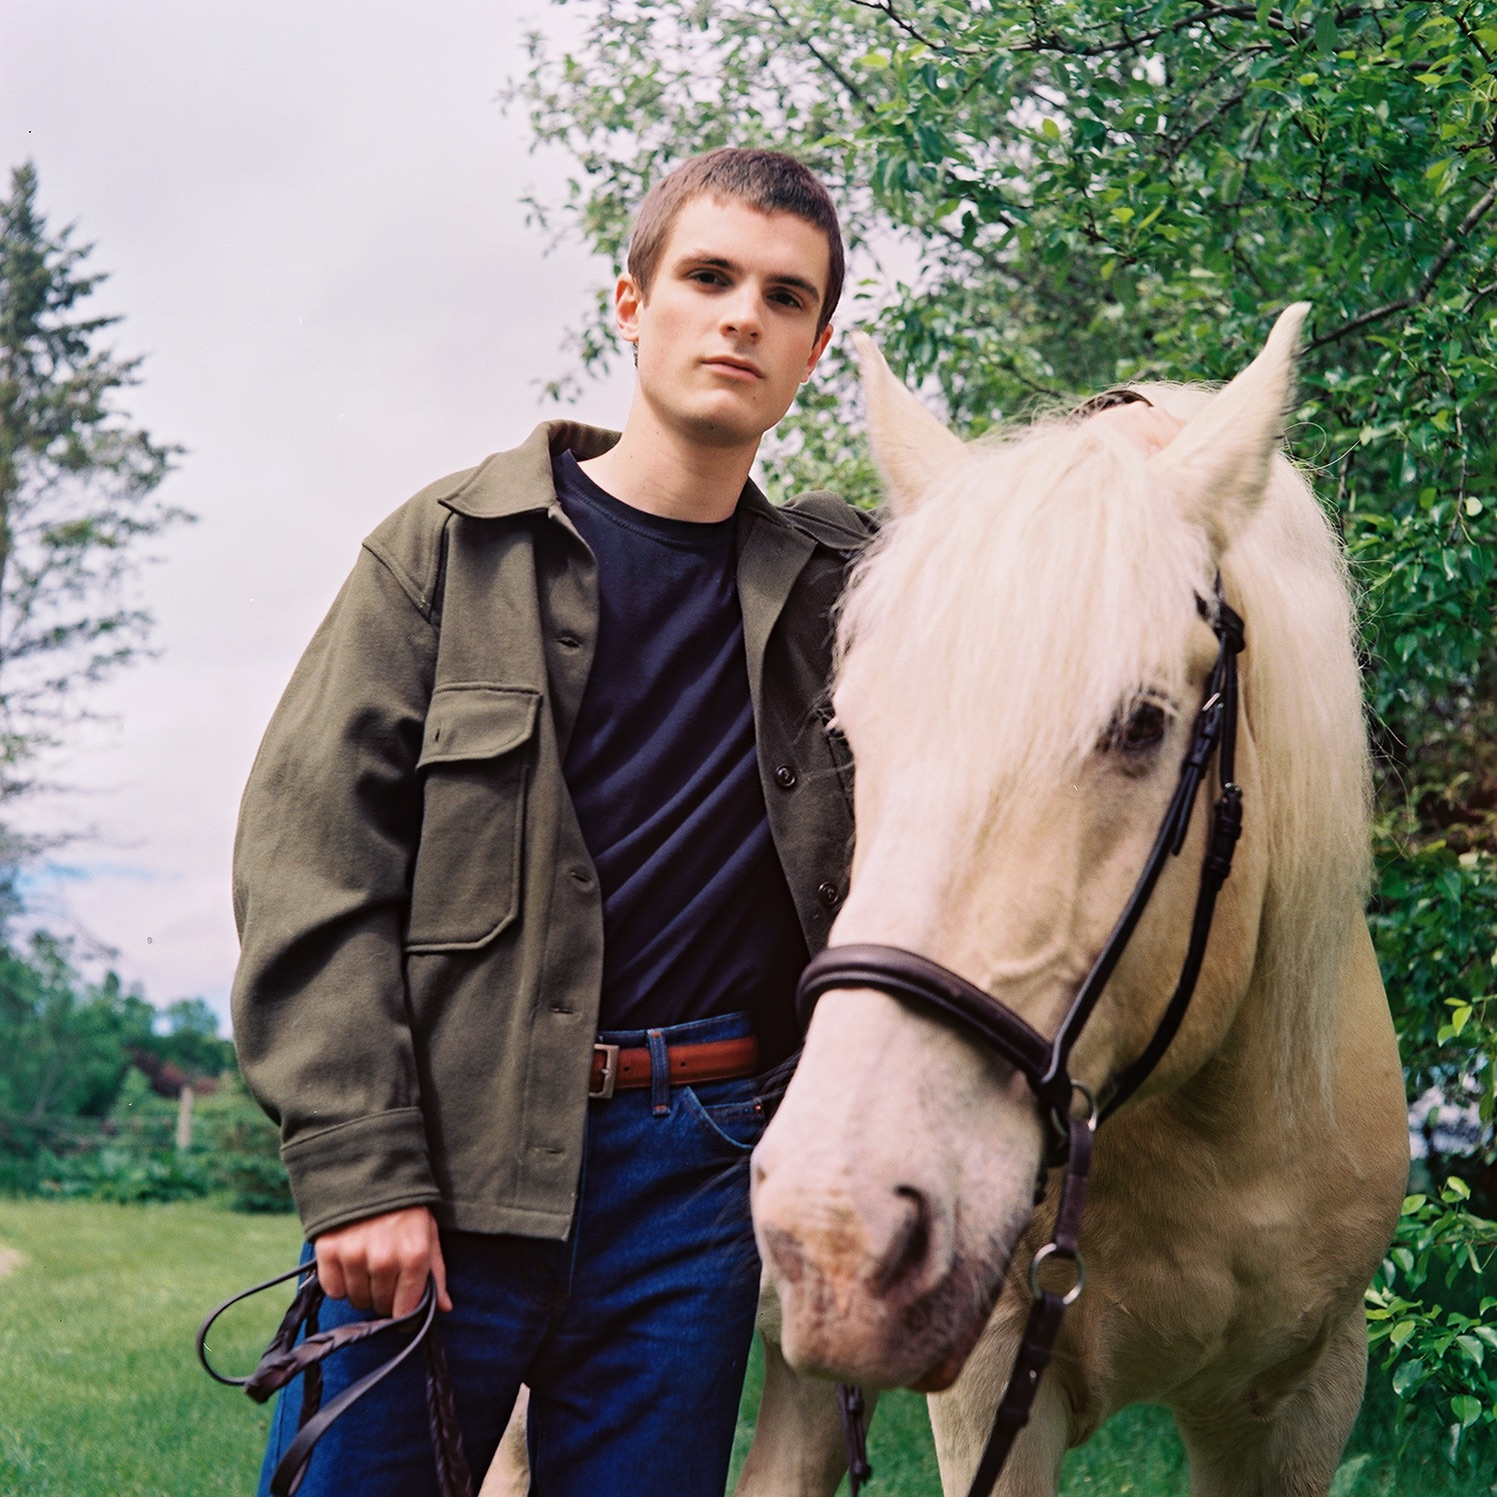 Fake Flowers and Fear of Horses Inspire Gorgeous Folk EP